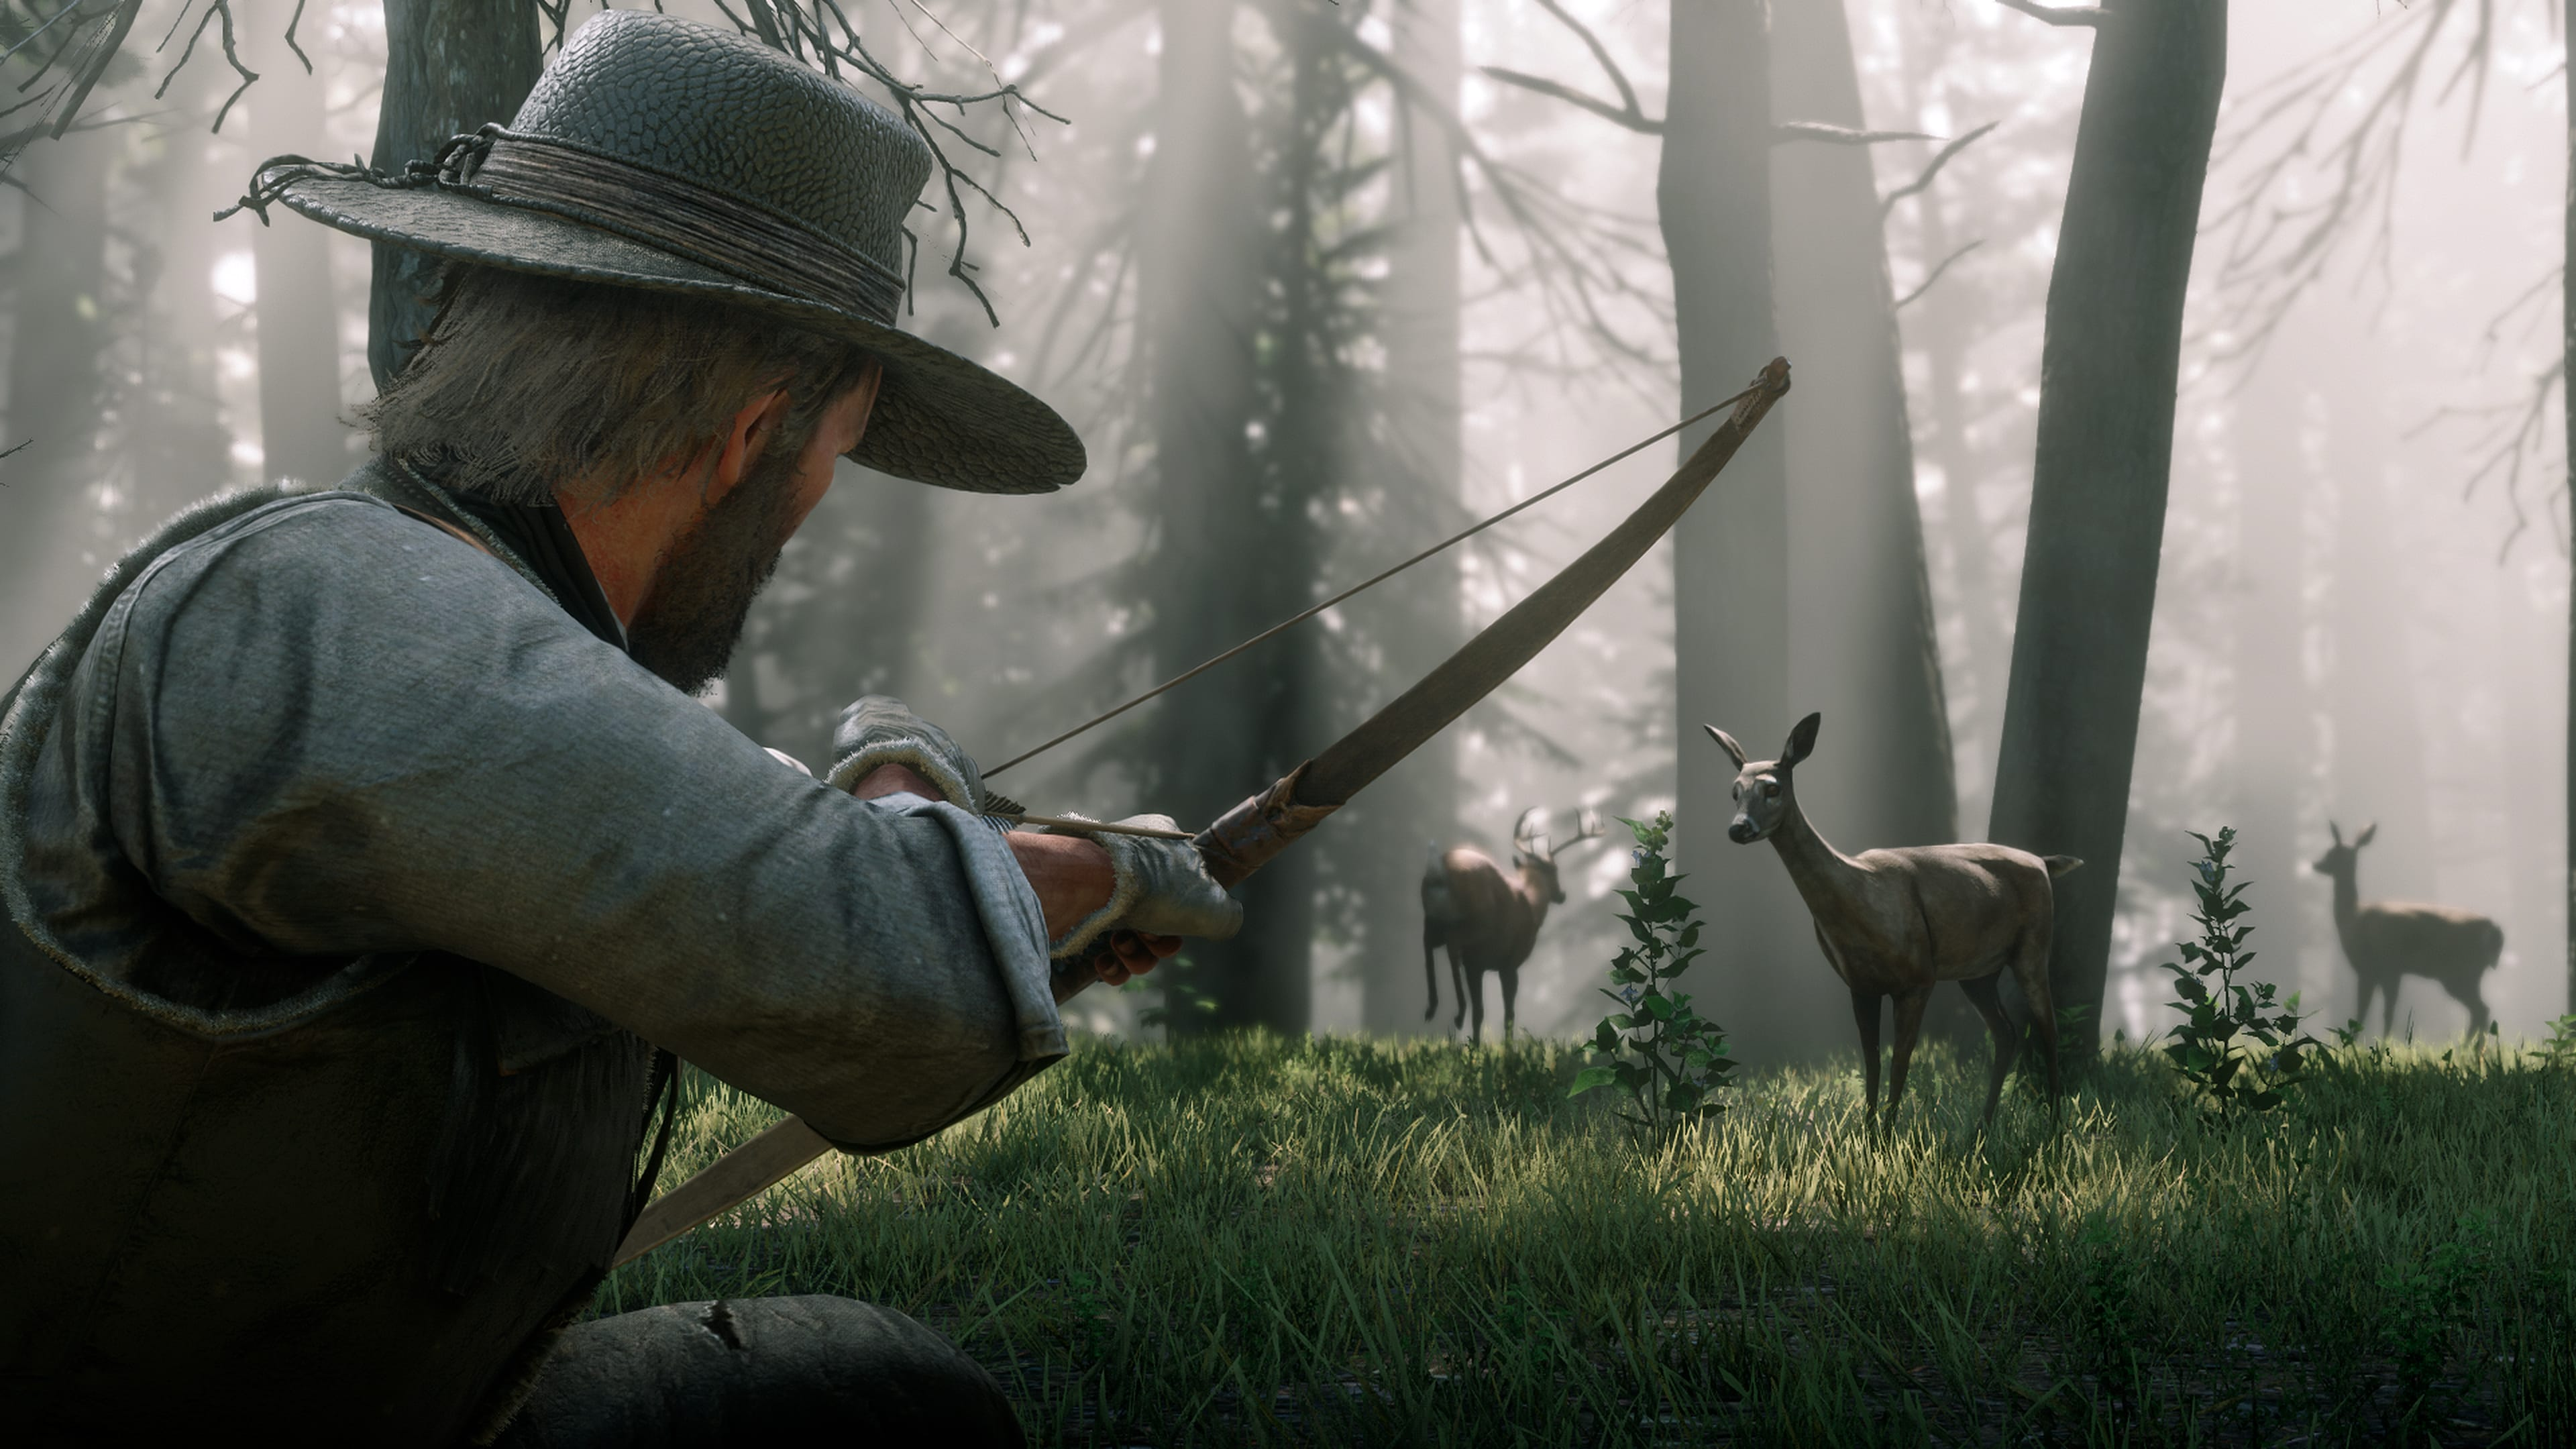 Slay Animals and Humans Both in These Red Dead Redemption 2 Videos